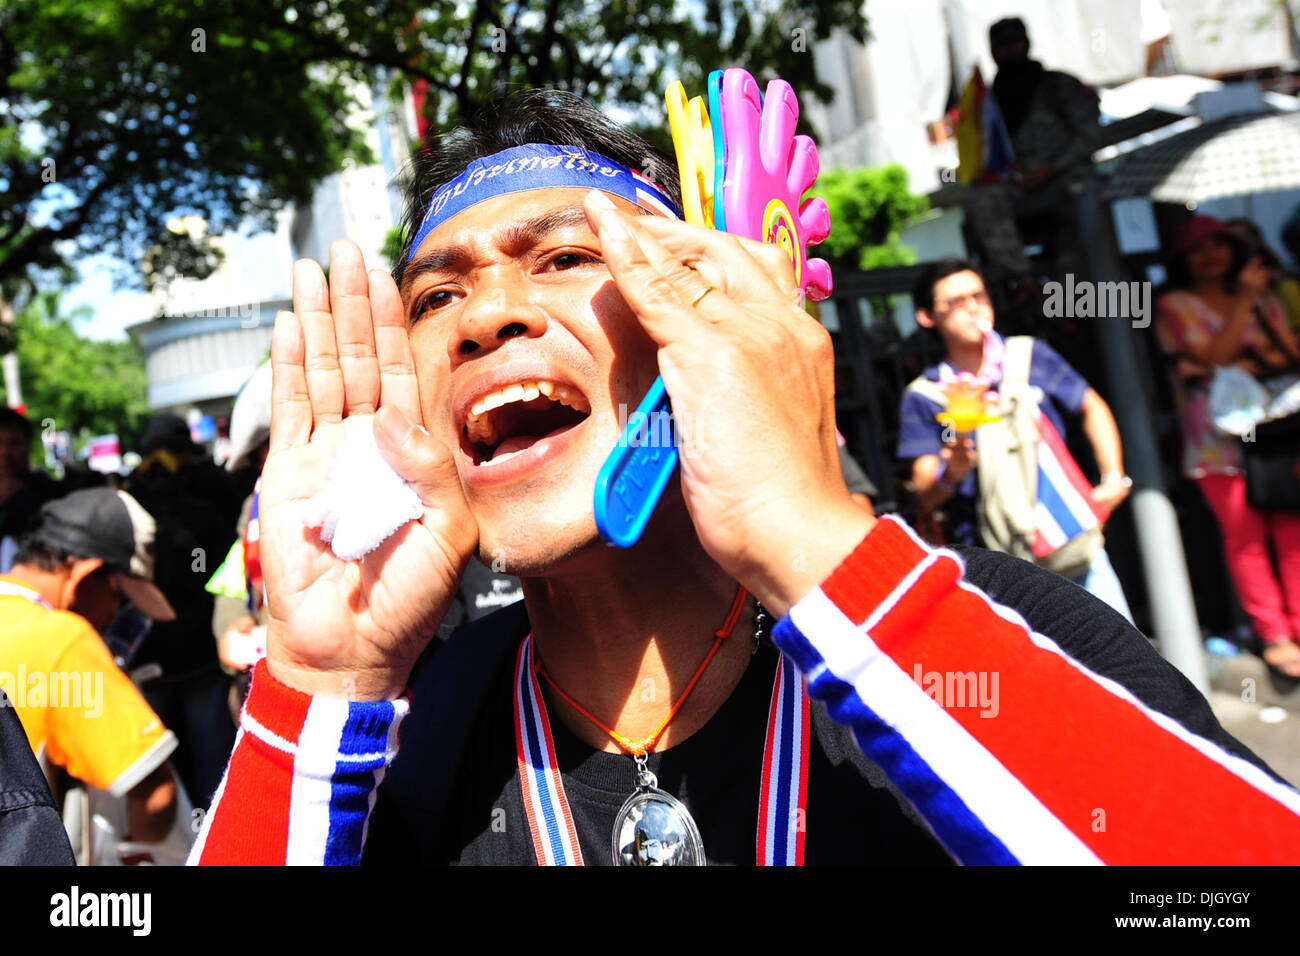 Bangkok, Thailand. 28th Nov, 2013. Thai anti-government protesters rally in front of the Royal Thai Police Headquarters in Bangkok, Thailand, on Nov. 28, 2013. Thai Prime Minister Yingluck Shinawatra on Thursday called on anti-government demonstrators to hold dialogue with the government to find a way out of the political tumult. Credit:  Rachen Sageamsak/Xinhua/Alamy Live News - Stock Image